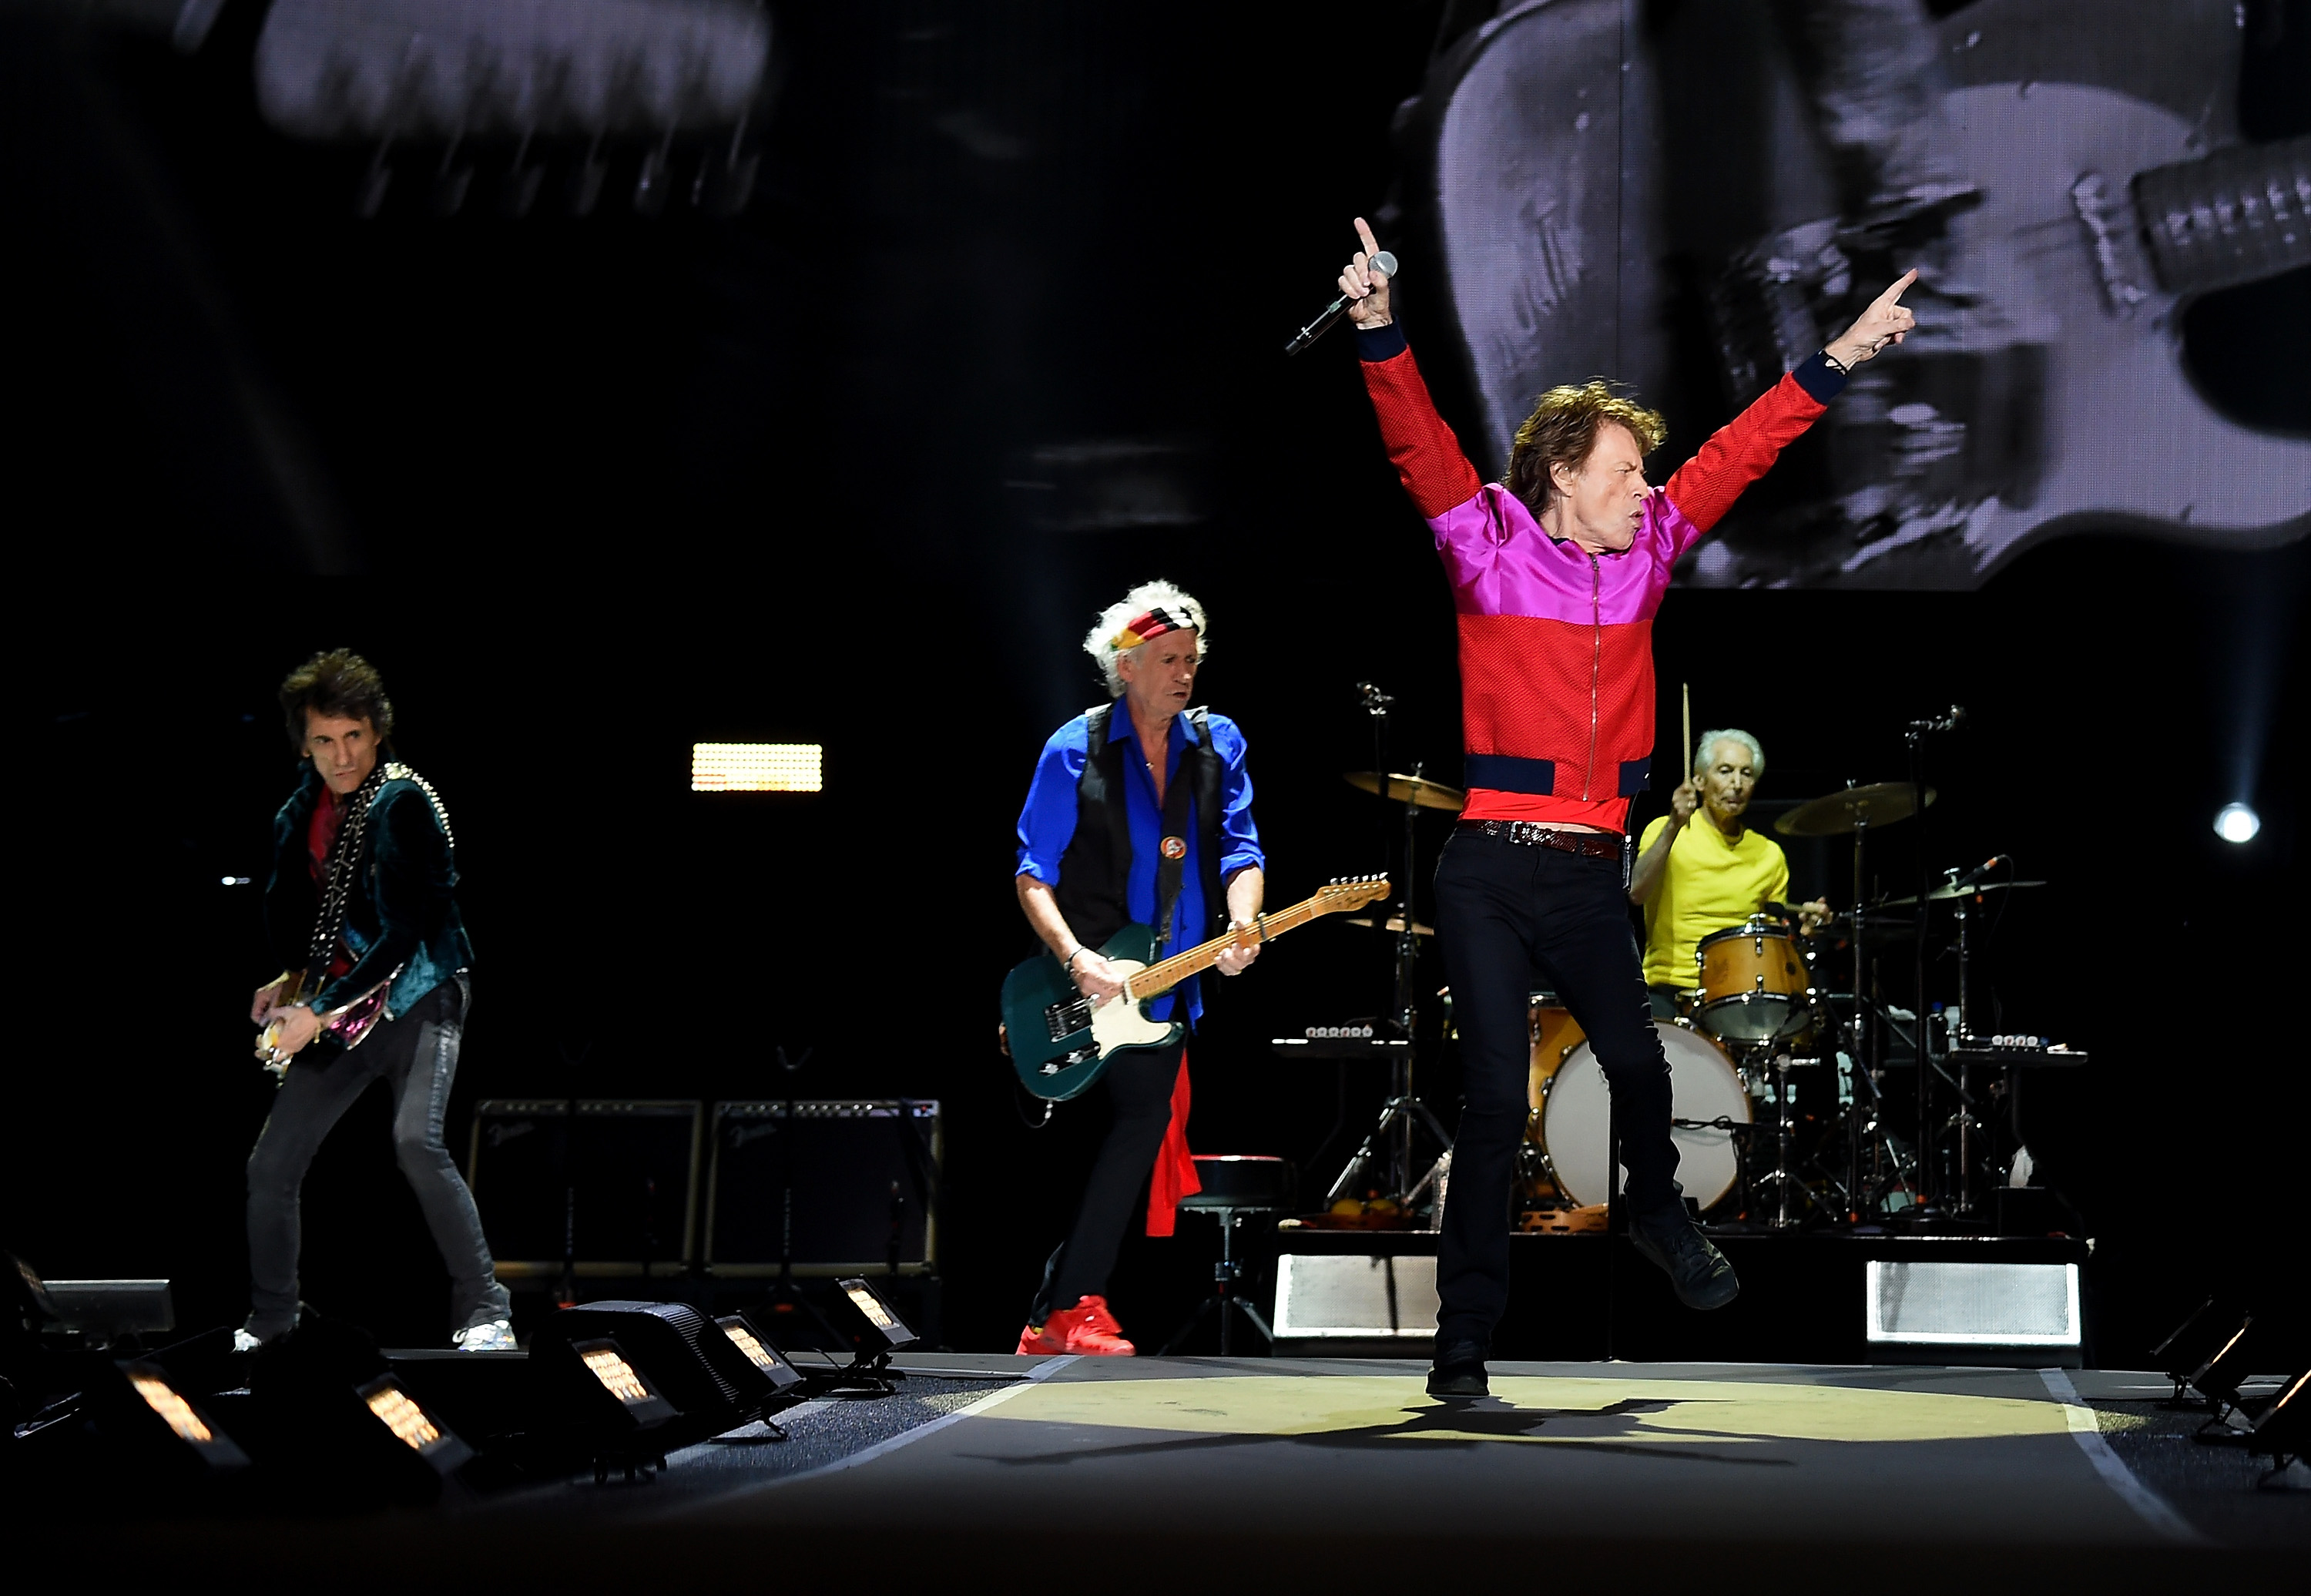 (L-R) Musician Ronnie Wood, musicians Keith Richards, singer Mick Jagger and musician Charlie Watts of The Rolling Stones perform during Desert Trip at the Empire Polo Field on October 14, 2016 in Indio, California. (Photo by Kevin Winter/Getty Images)